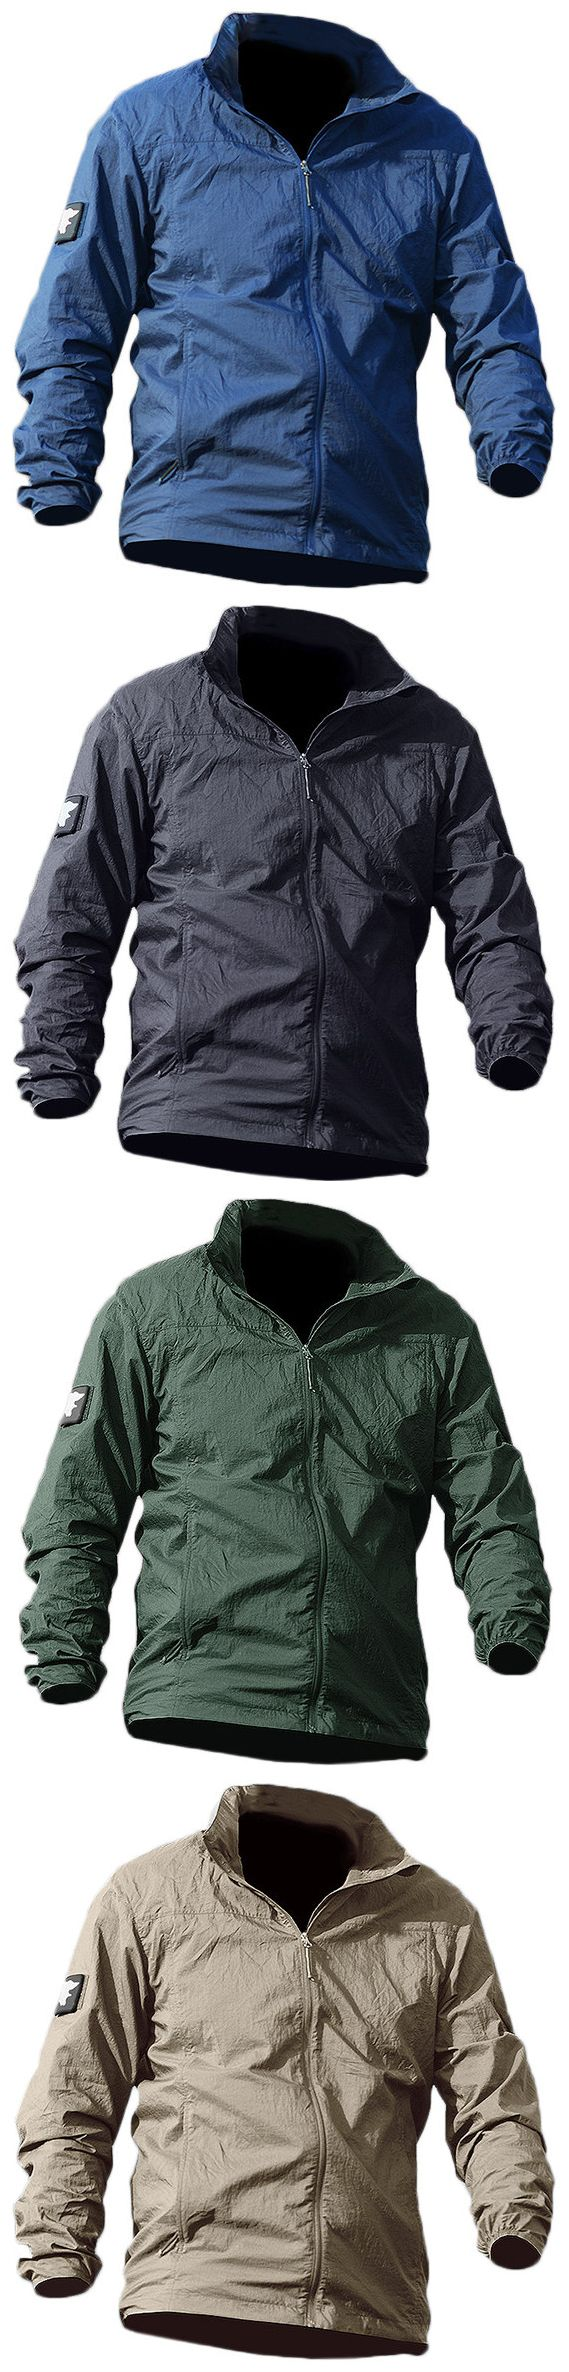 Outdoor Climbing Sun Protective Super Thin Quick-drying Skinsuit Jacket for Men